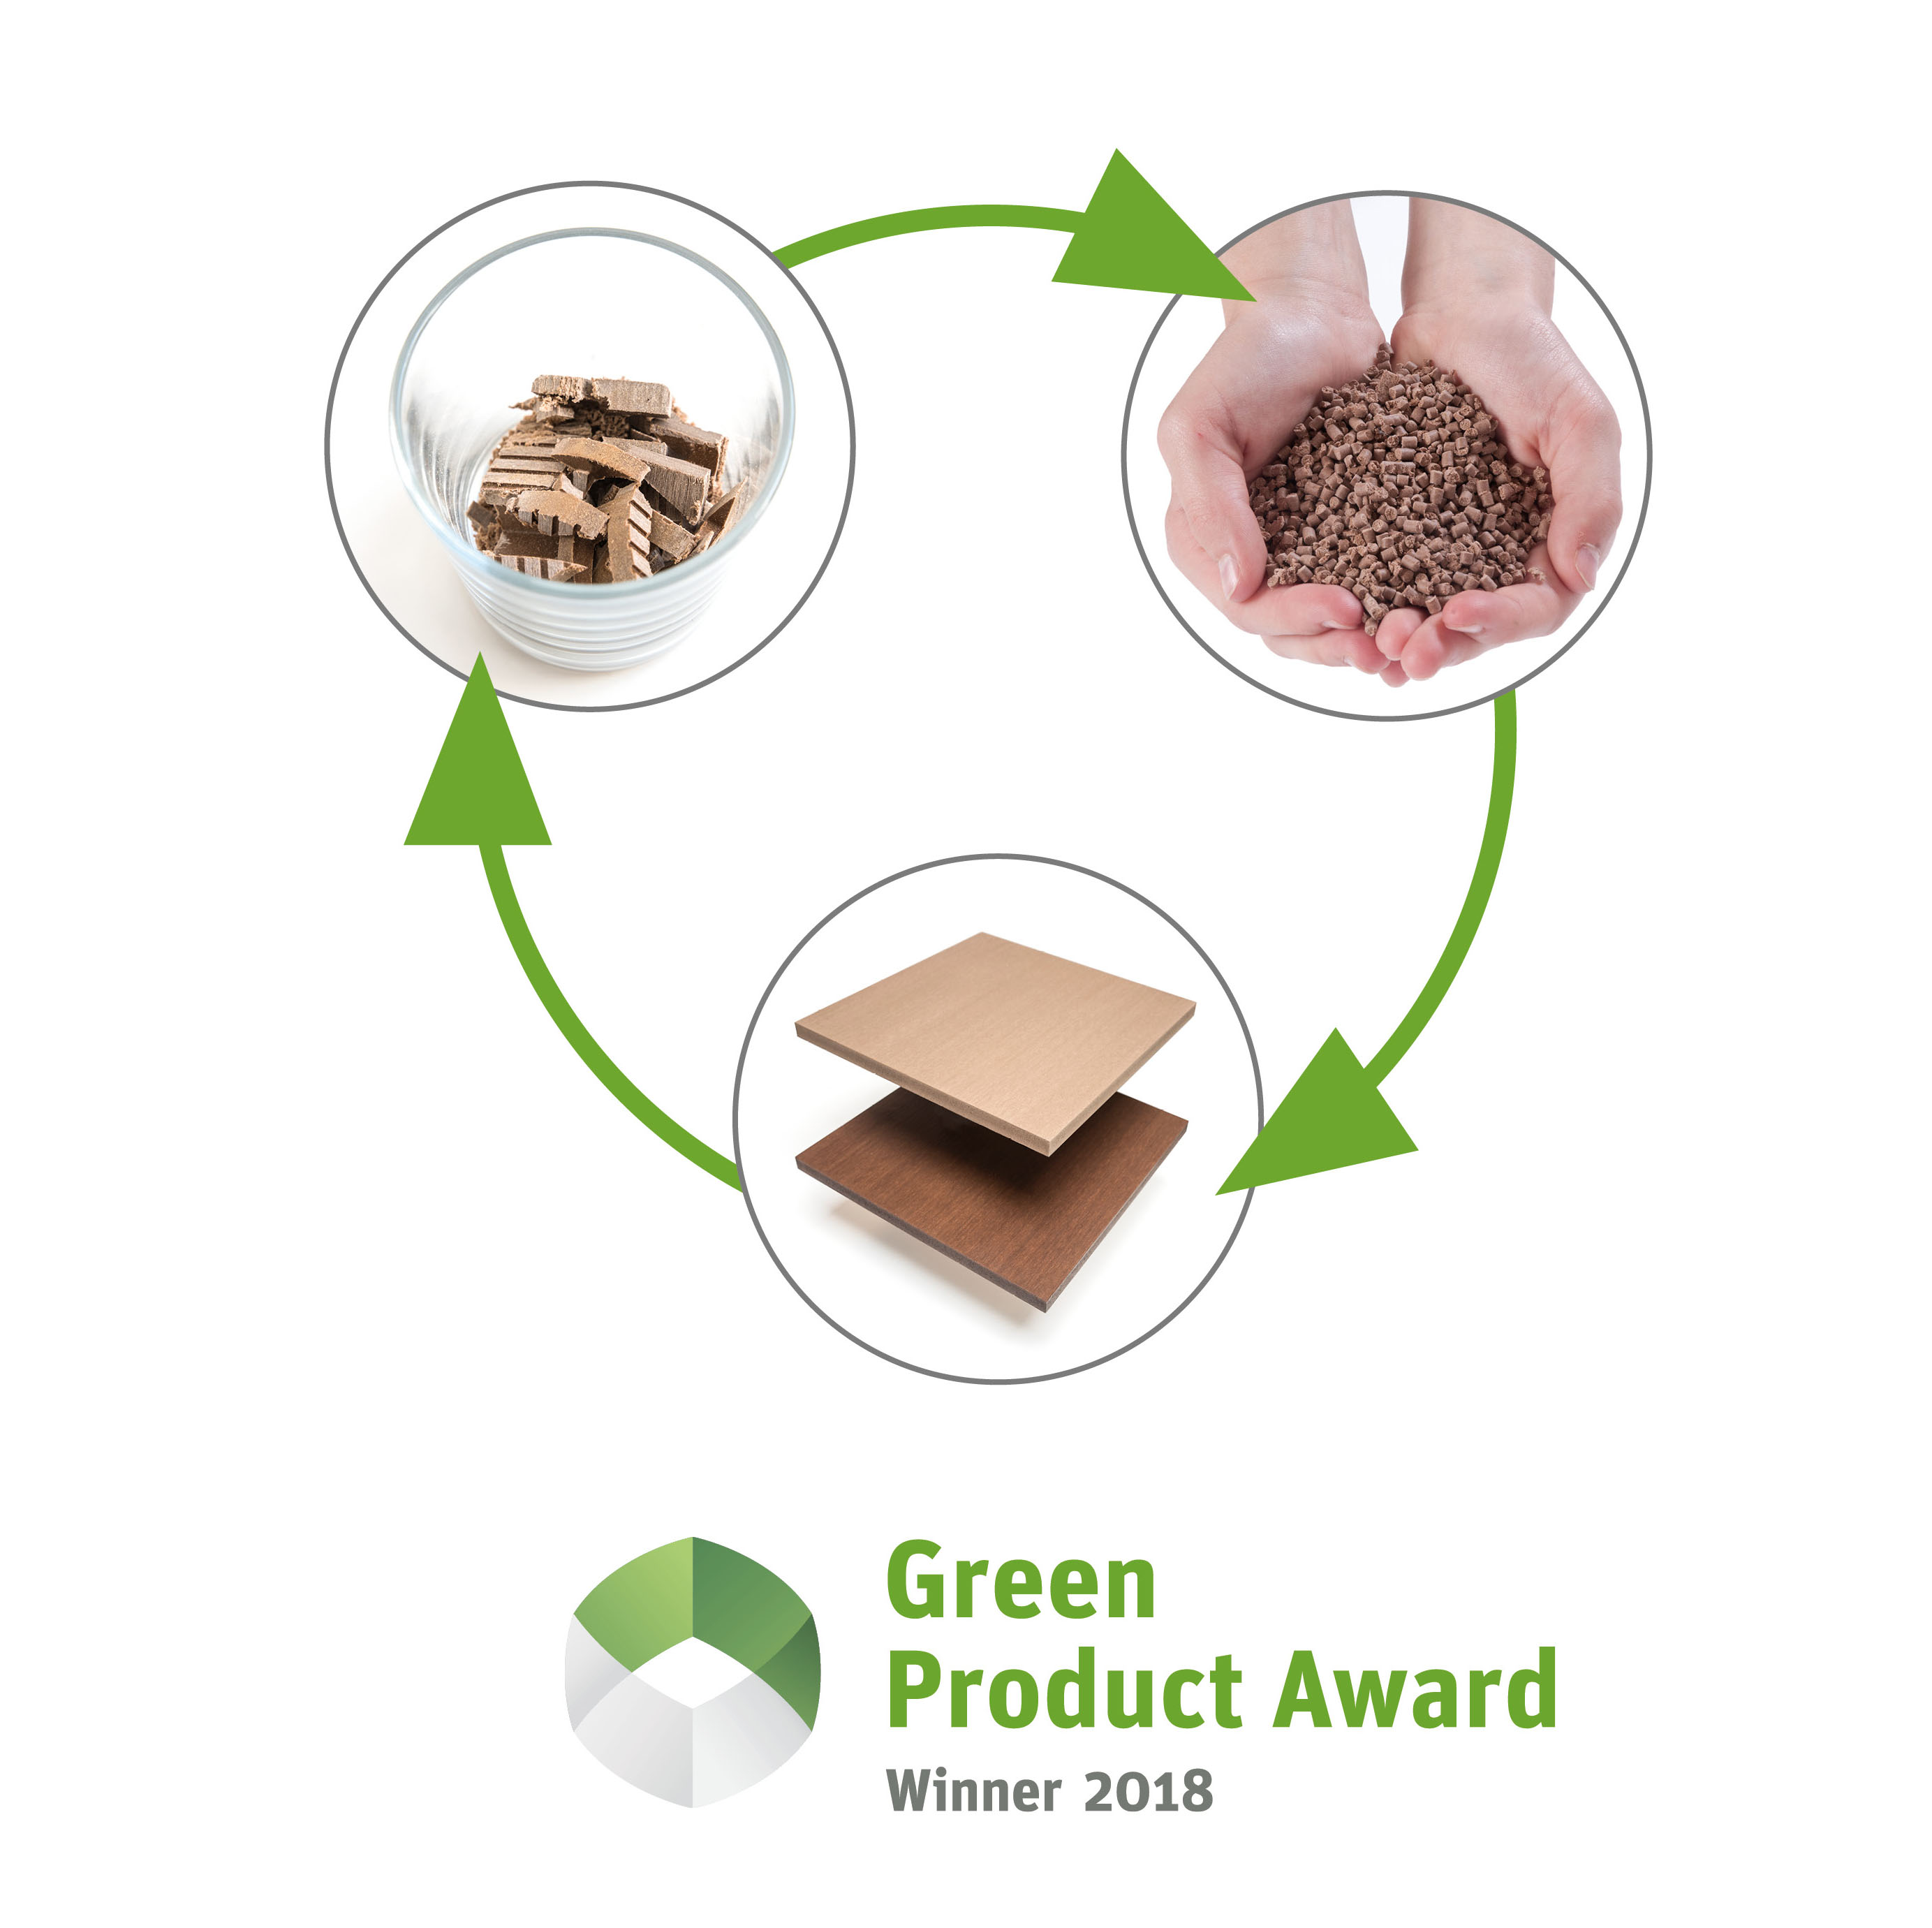 GreenProductAward2018 RecyclingPlatte Kopie